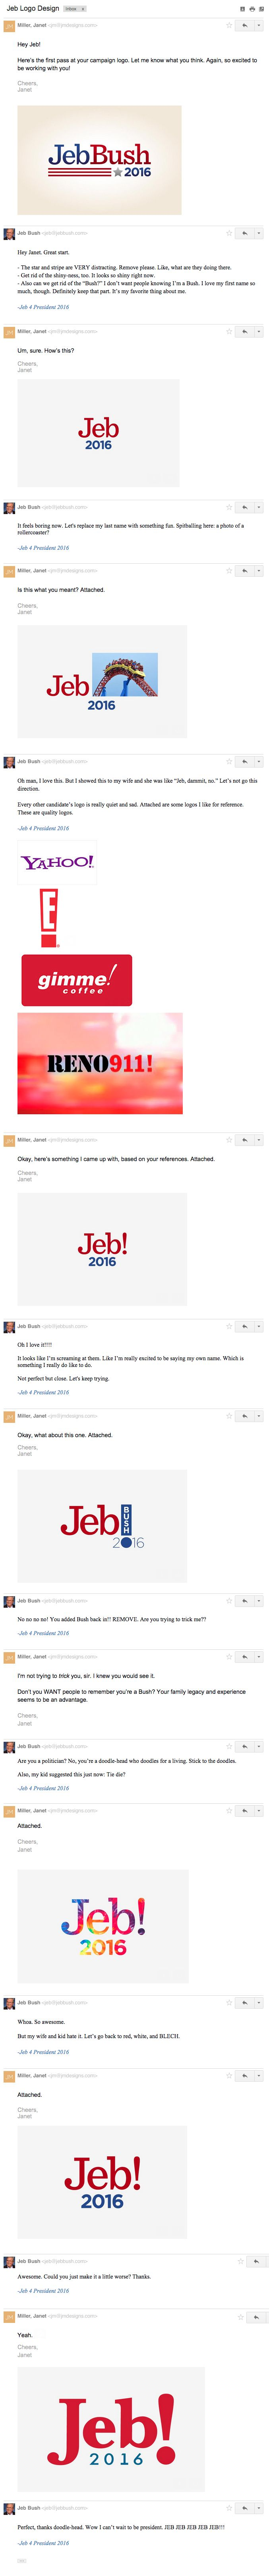 Humour - Leaked E-mail Between Jeb Bush and his Graphic Designer - - June 15, 2015 - After teasing us for months, Jeb Bush finally blew his load and announced that he's running for president in 2016. Along with this campaign announcement came a brand-new logo reveal: